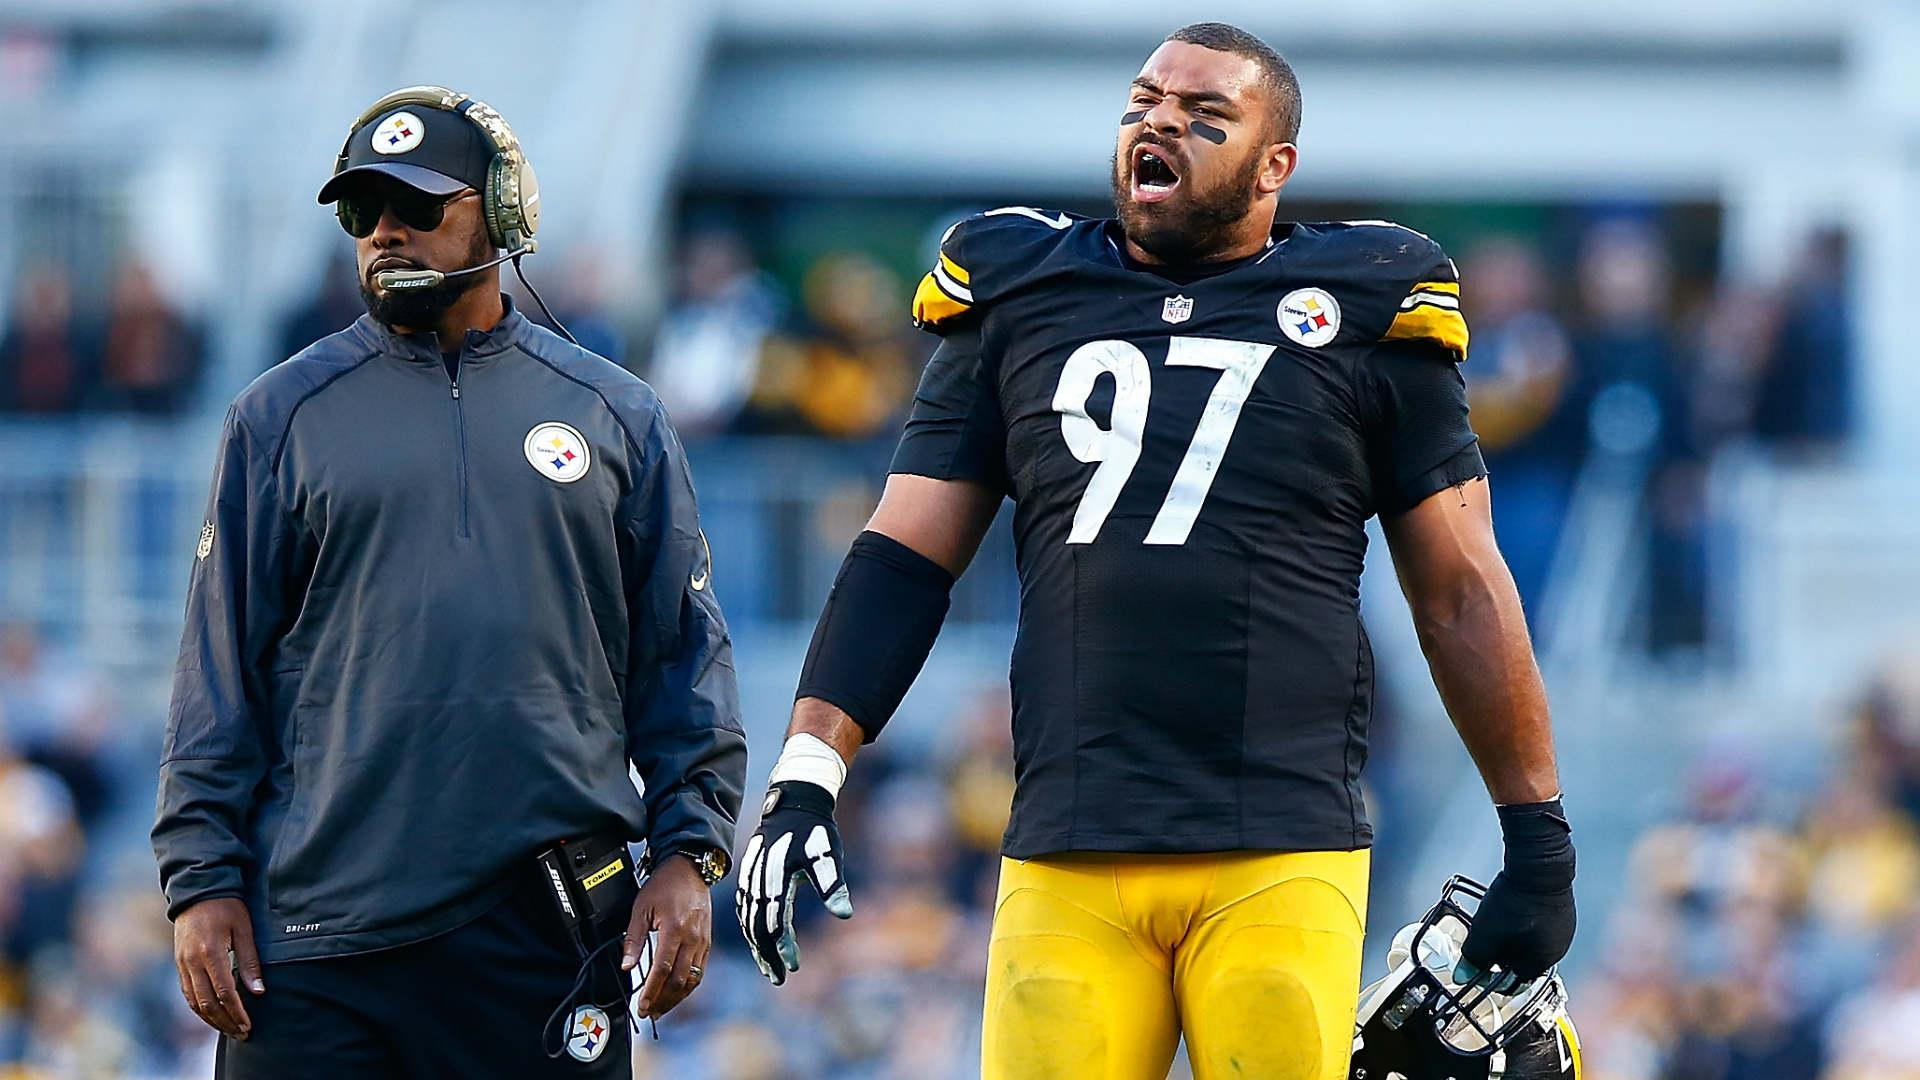 Cam Heyward says blaming Mike Tomlin for Steelers struggles is 'a